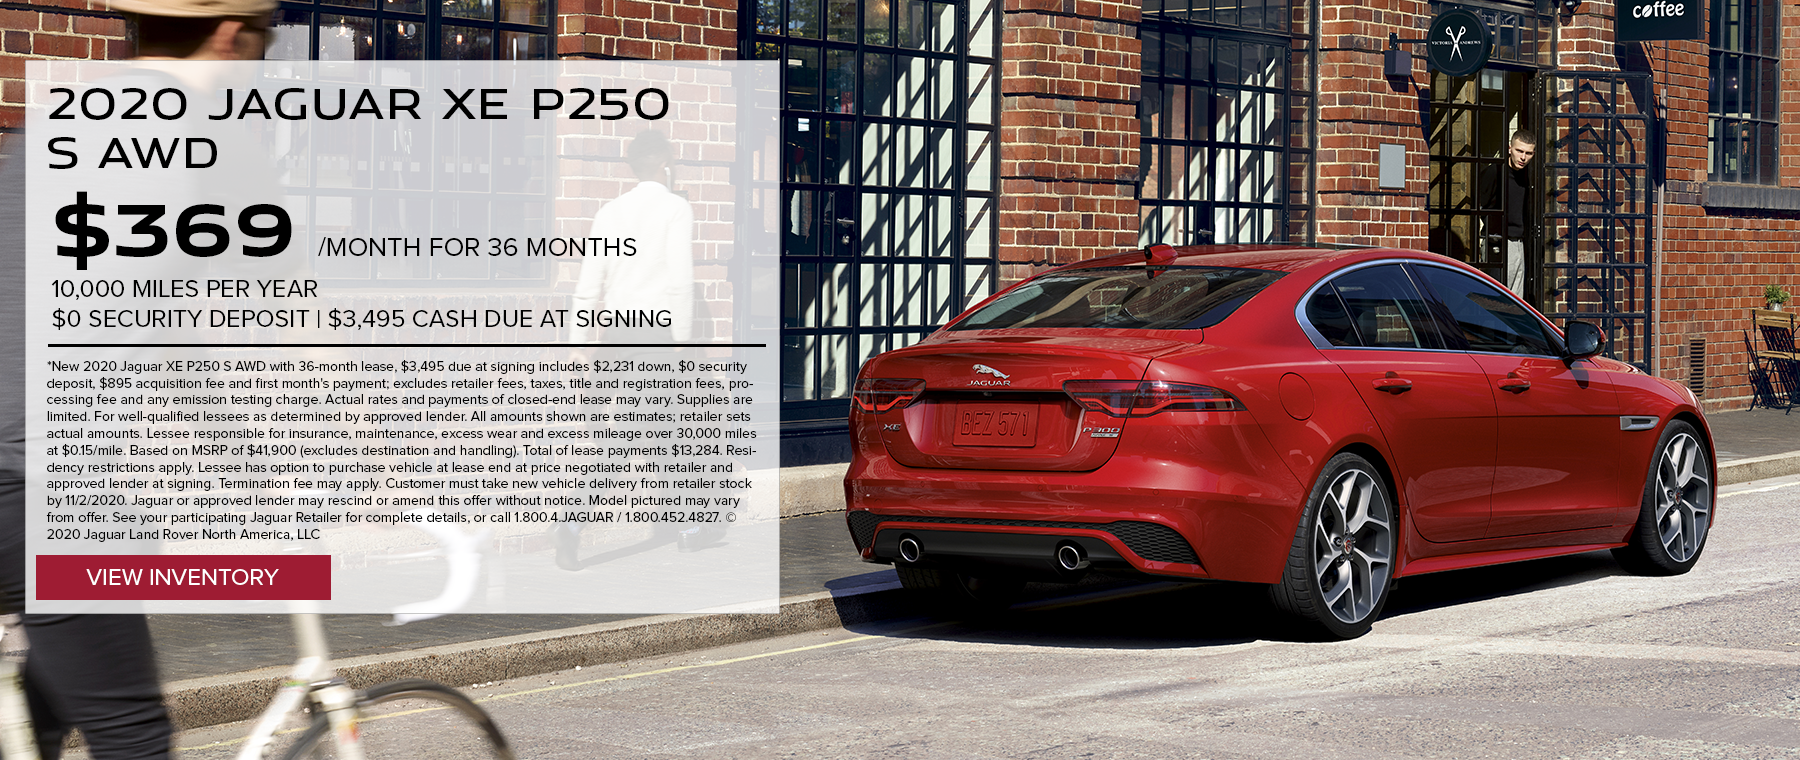 *New 2020 Jaguar XE P250 S AWD with 36-month lease, $3,495 due at signing includes $2,231 down, $0 security deposit, $895 acquisition fee and first month's payment; excludes retailer fees, taxes, title and registration fees, processing fee and any emission testing charge. Actual rates and payments of closed-end lease may vary. Supplies are limited. For well-qualified lessees as determined by approved lender. All amounts shown are estimates; retailer sets actual amounts. Lessee responsible for insurance, maintenance, excess wear and excess mileage over 30,000 miles at $0.15/mile. Based on MSRP of $41,900 (excludes destination and handling). Total of lease payments $13,284. Residency restrictions apply. Lessee has option to purchase vehicle at lease end at price negotiated with retailer and approved lender at signing. Termination fee may apply. Customer must take new vehicle delivery from retailer stock by 11/2/2020. Jaguar or approved lender may rescind or amend this offer without notice. Model pictured may vary from offer. See your participating Jaguar Retailer for complete details, or call 1.800.4.JAGUAR / 1.800.452.4827. © 2020 Jaguar Land Rover North America, LLC